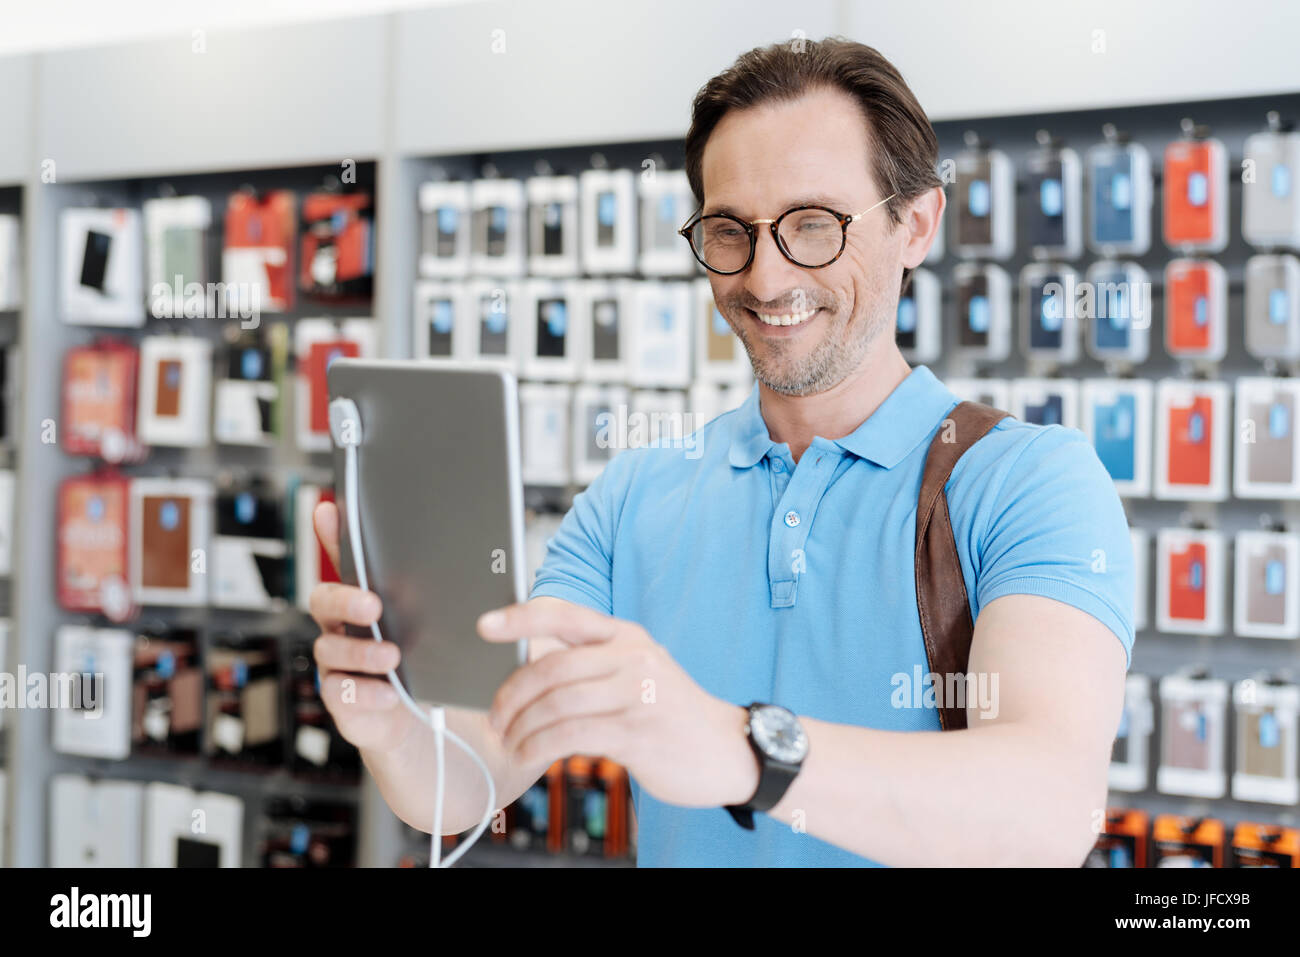 Completely satisfied with its quality. Smart man with a backpack and a black wrist watch taking selfies with a tablet - Stock Image